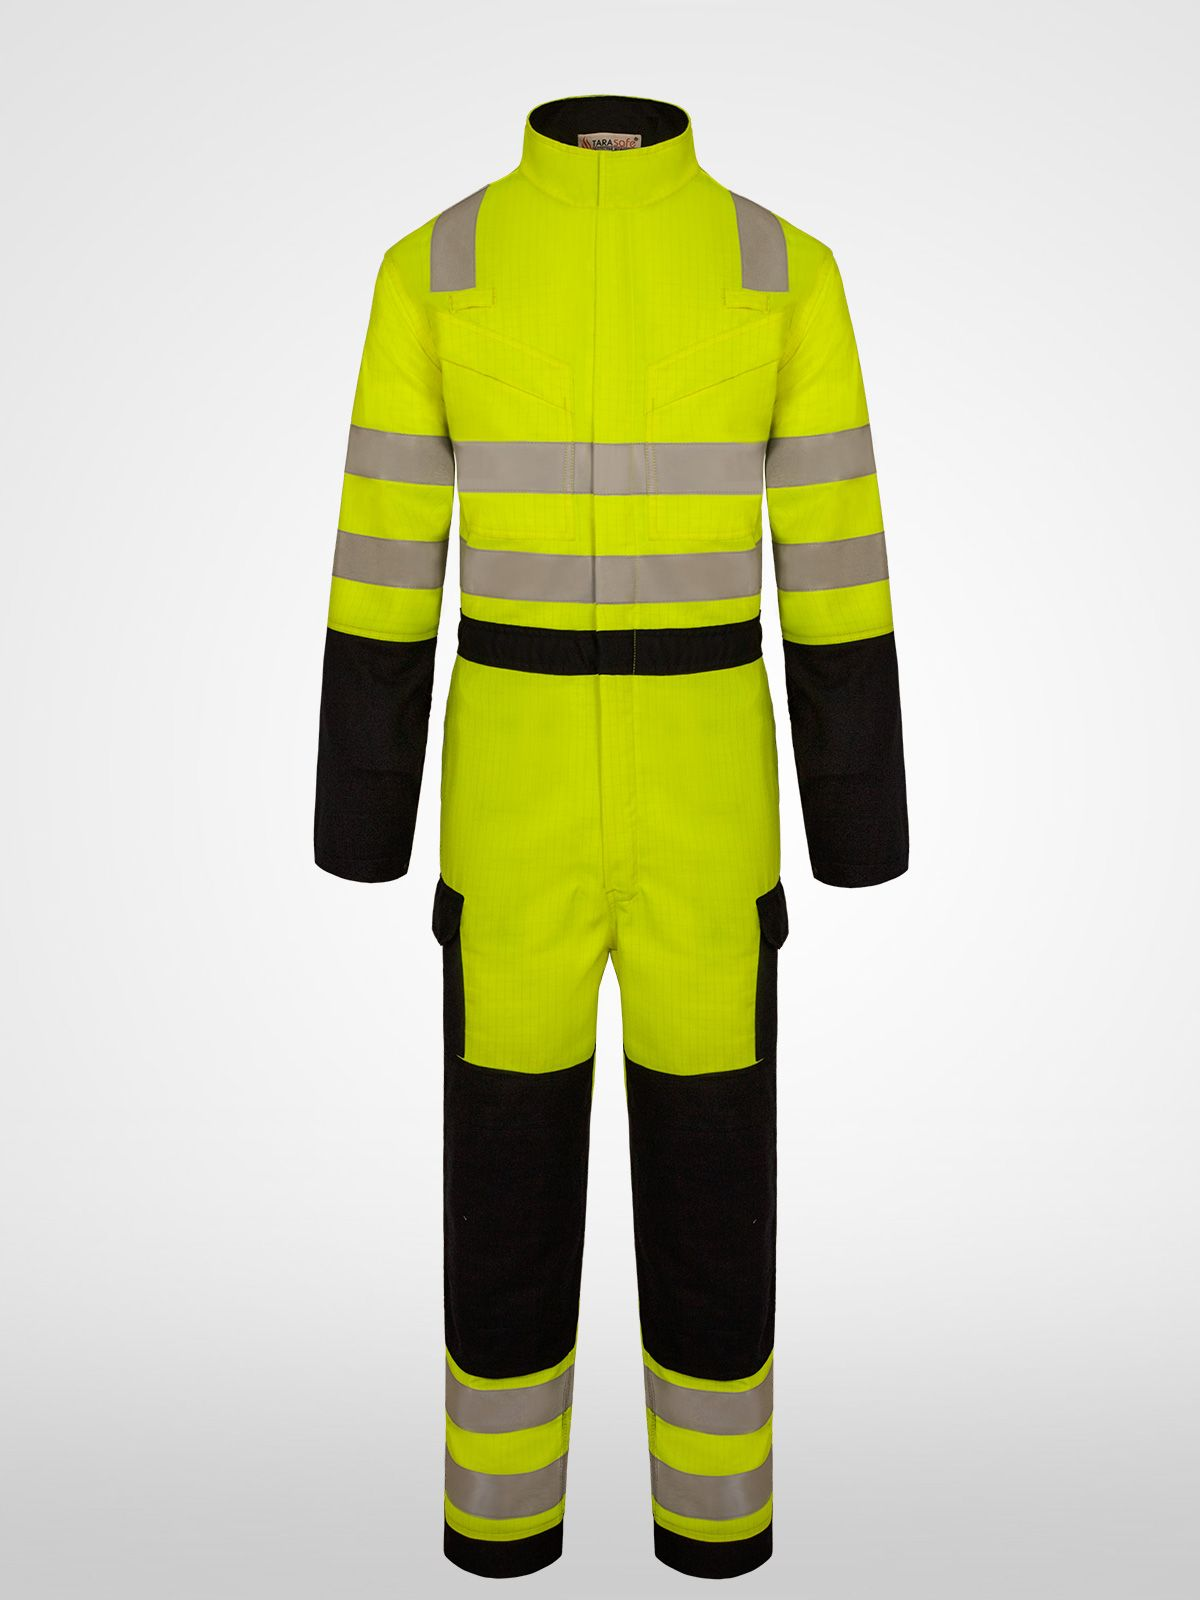 671e08178213 Made out of Hi-Vis Flame Resistant Fabric